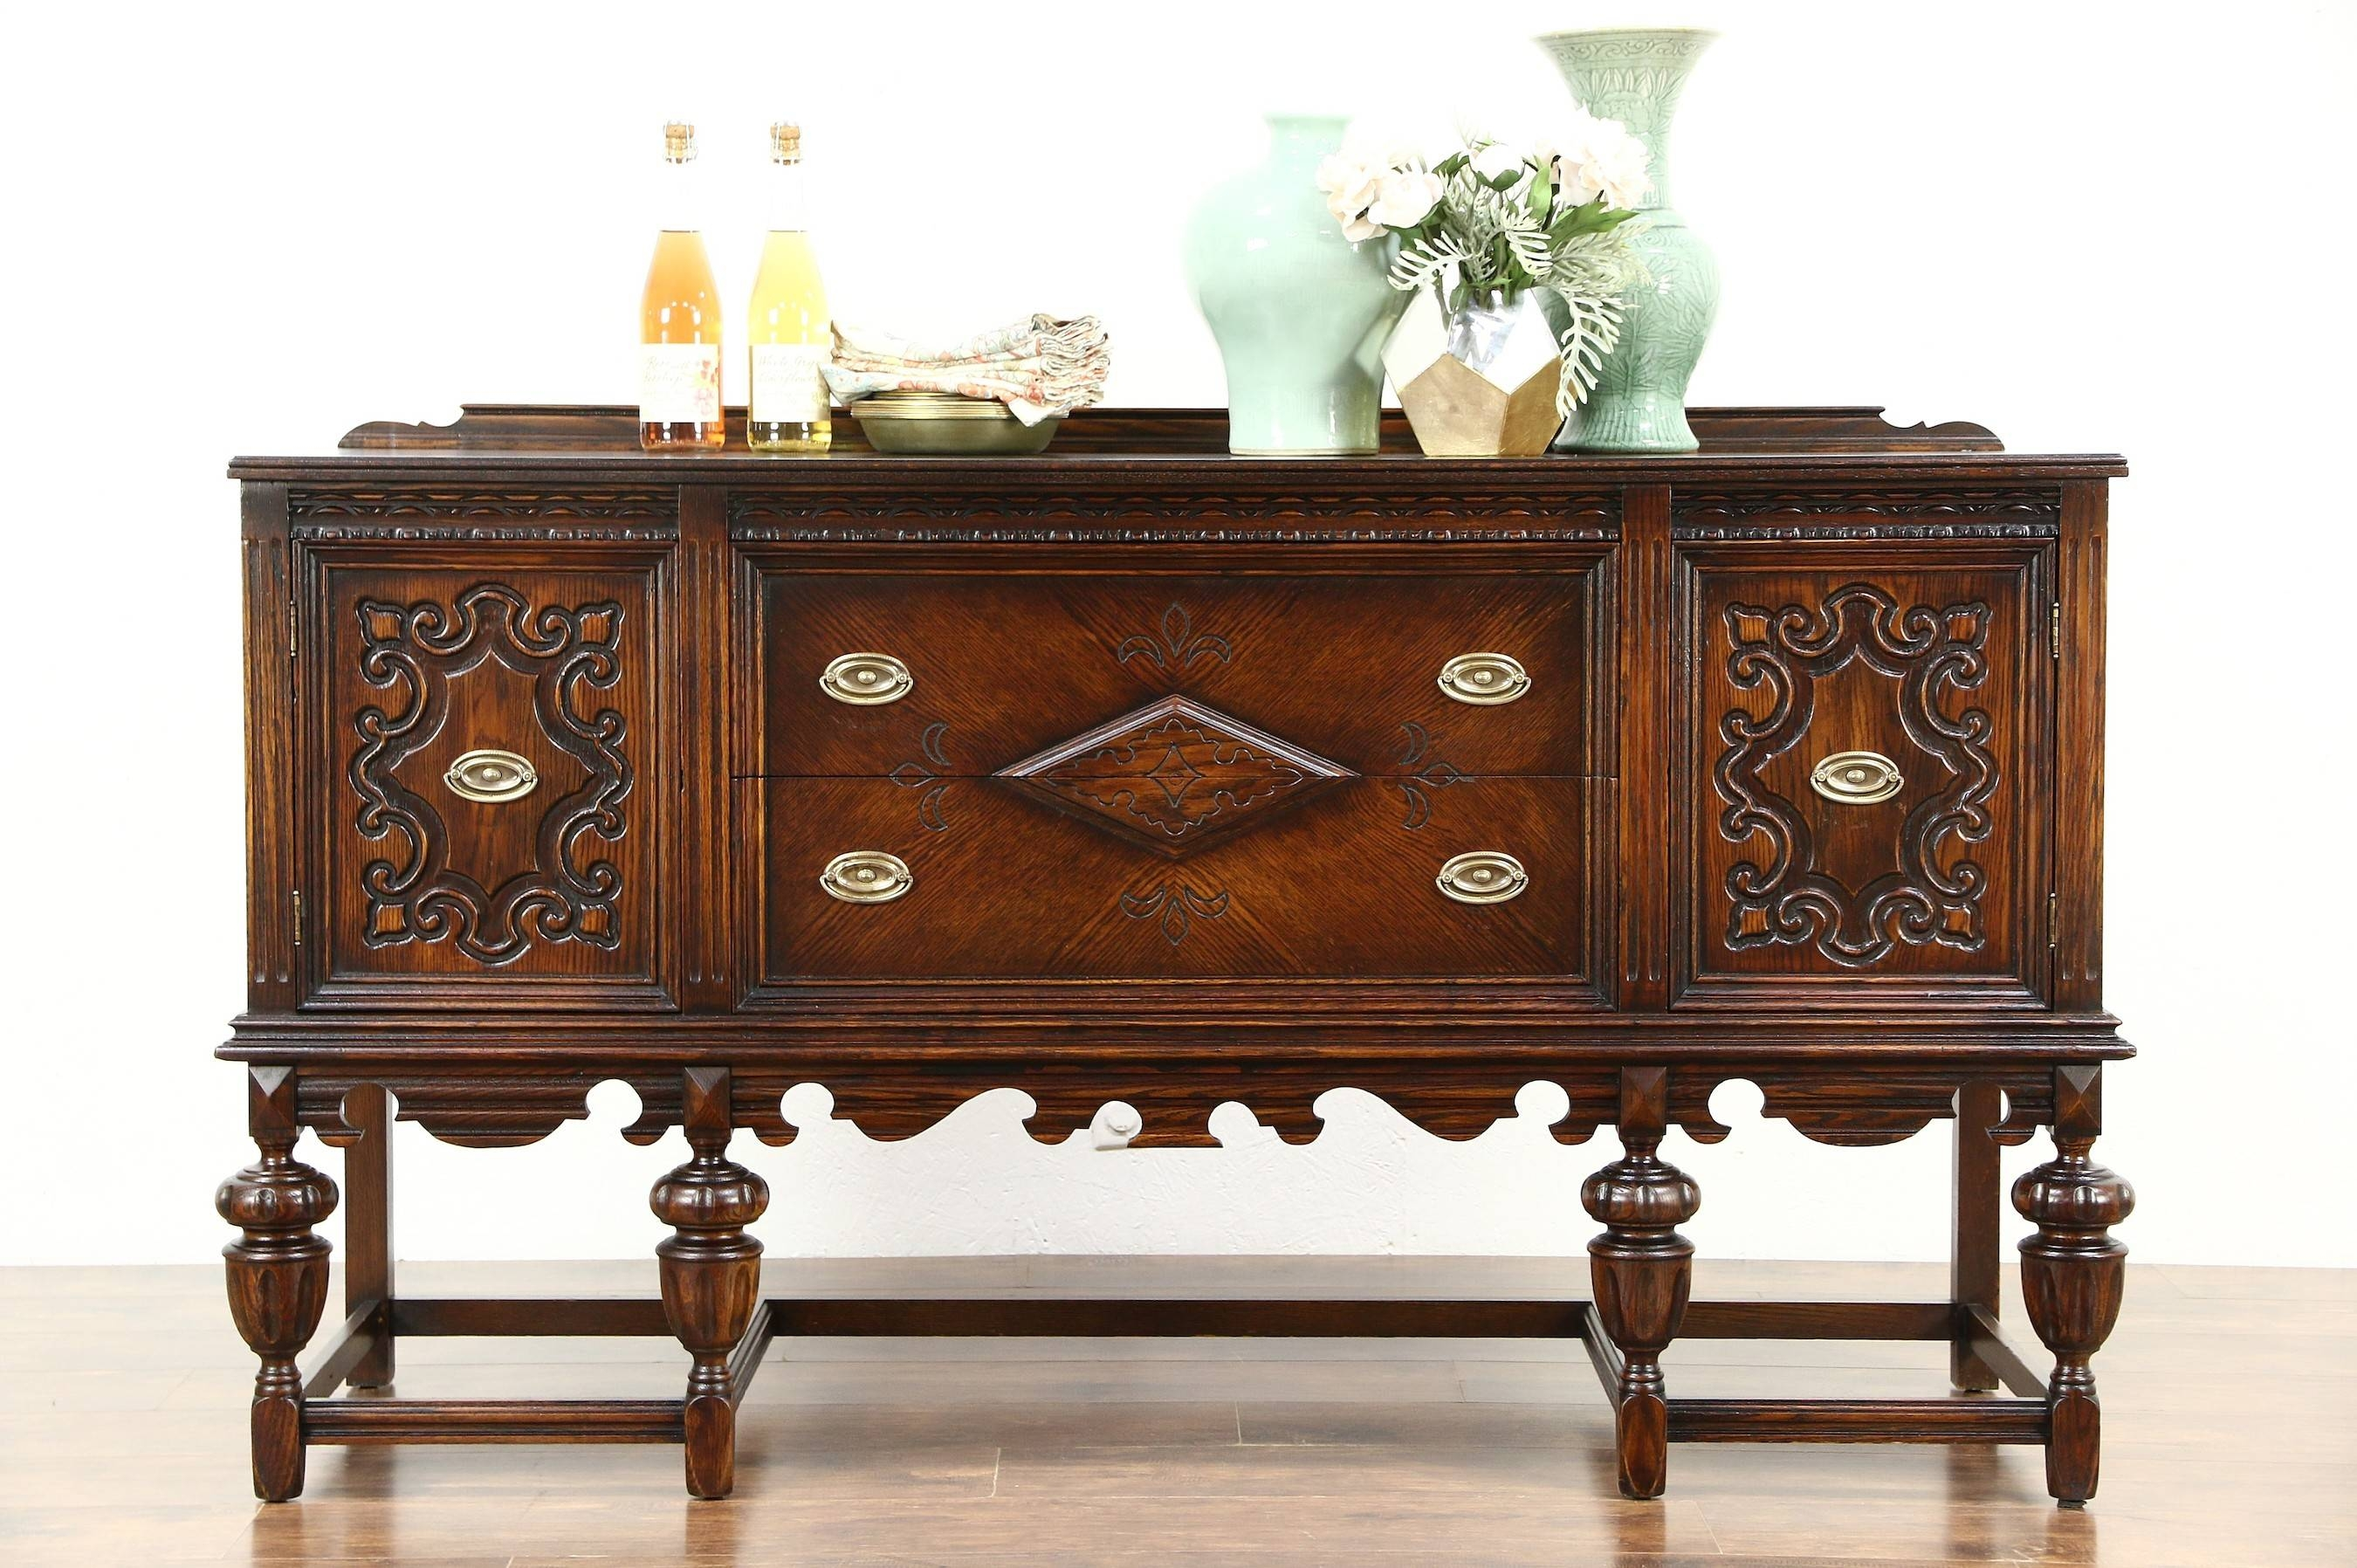 English Tudor 1920 Antique Carved Oak Sideboard, Server Or Buffet In Most Up To Date Antique Oak Sideboards (#6 of 15)